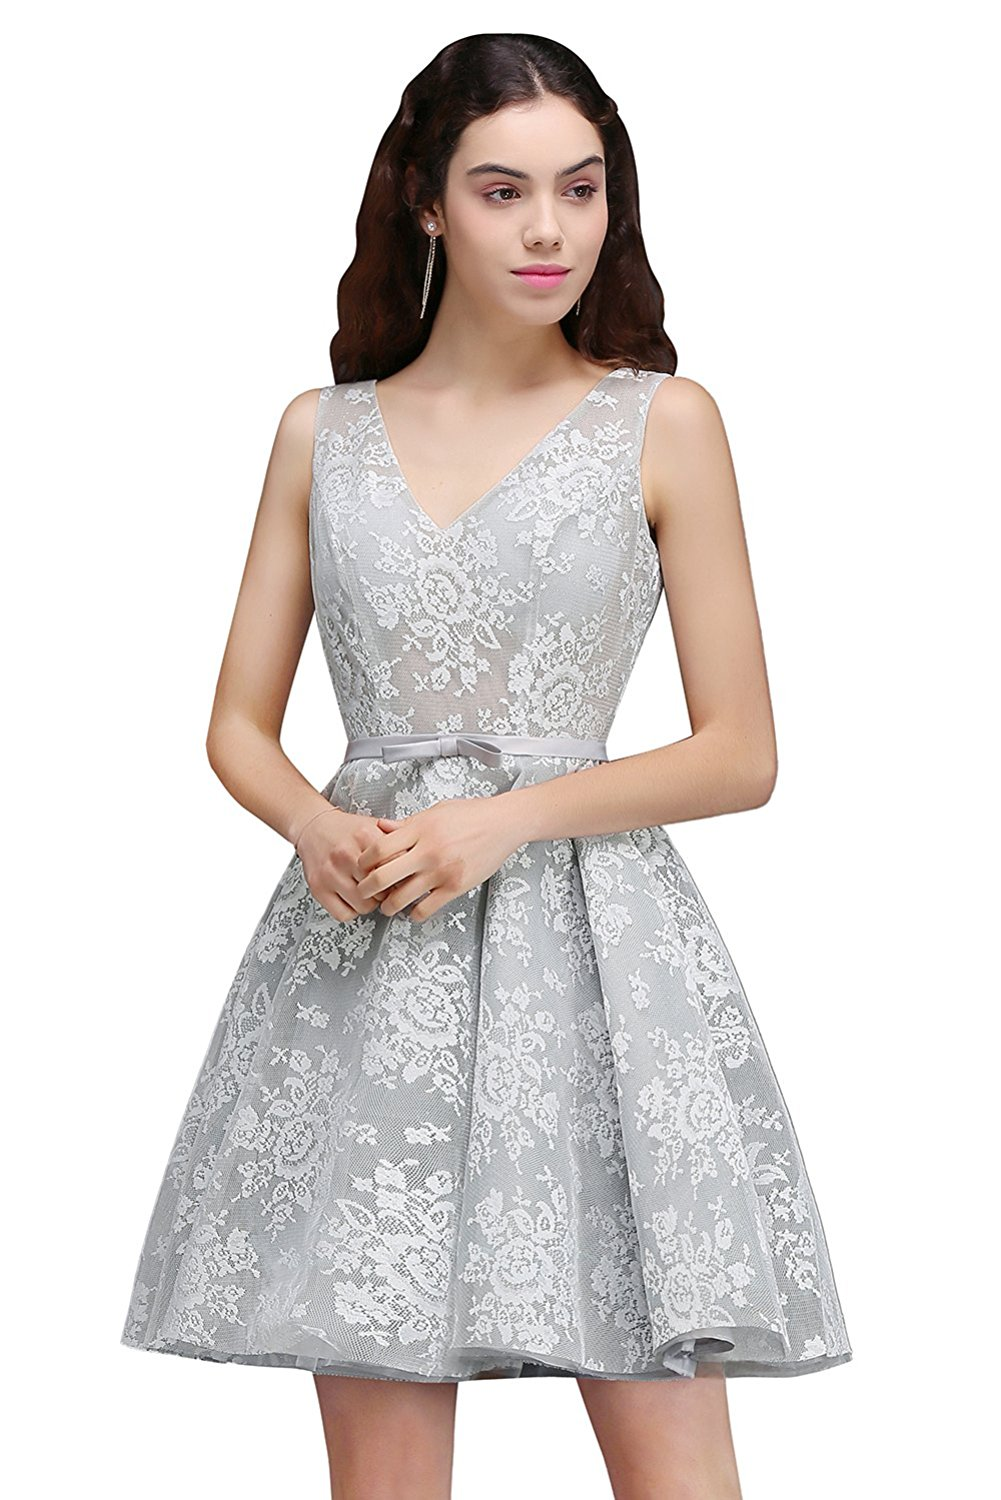 MisShow A-line V-neck Floral Lace Homecoming Dresses Short Prom Dress at Amazon Women's Clothing store: